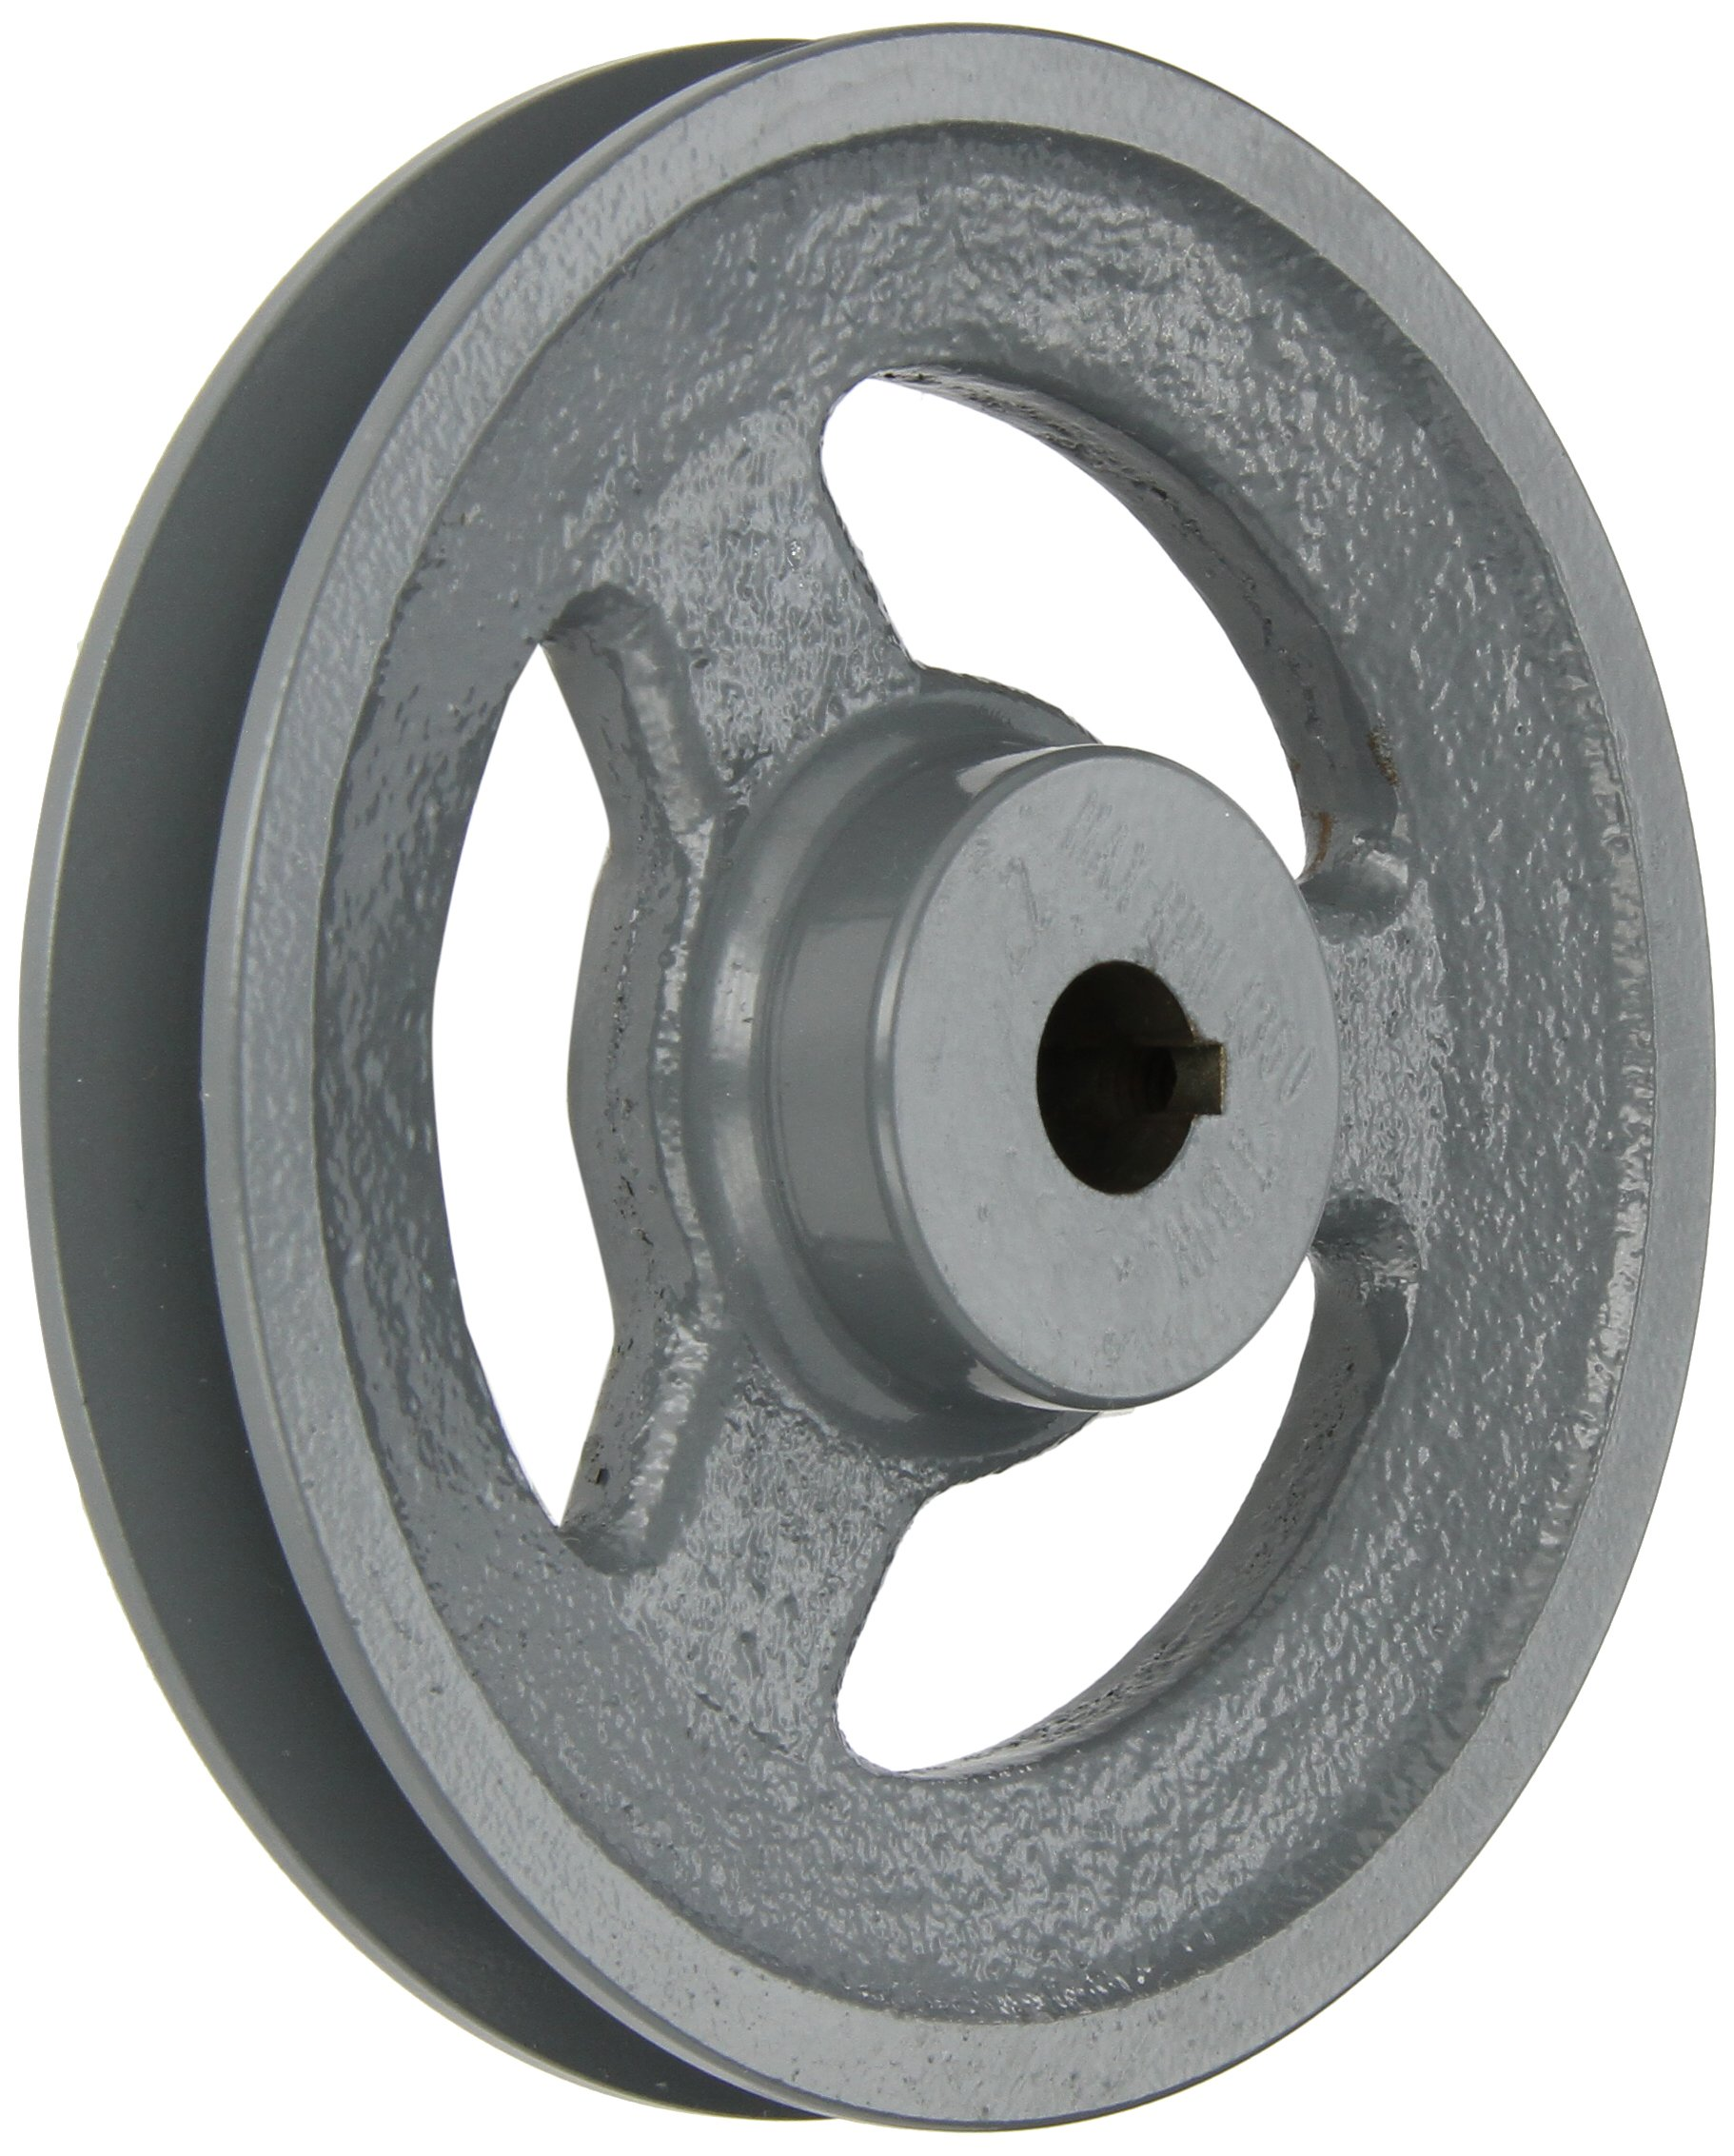 Gates BK60 Light Duty Spoke Sheaves, BK Type, 5.75'' OD, 1 Groove, 5/8'' Bore